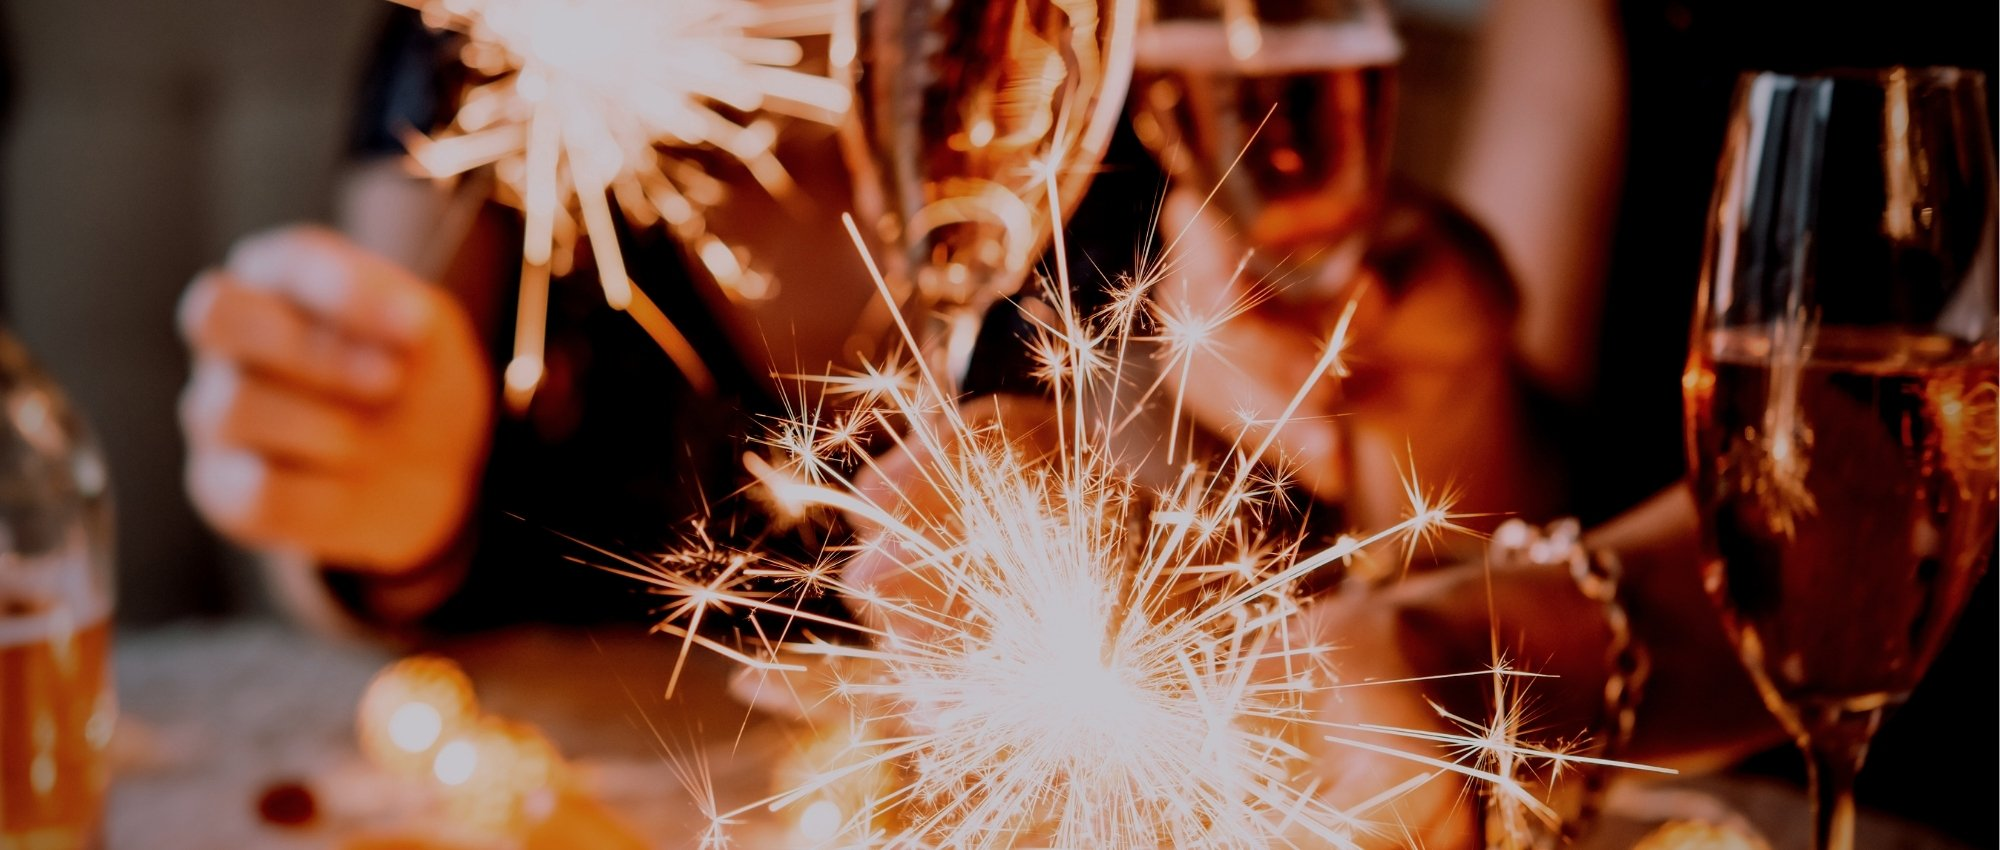 people drinking champagne with sparklers